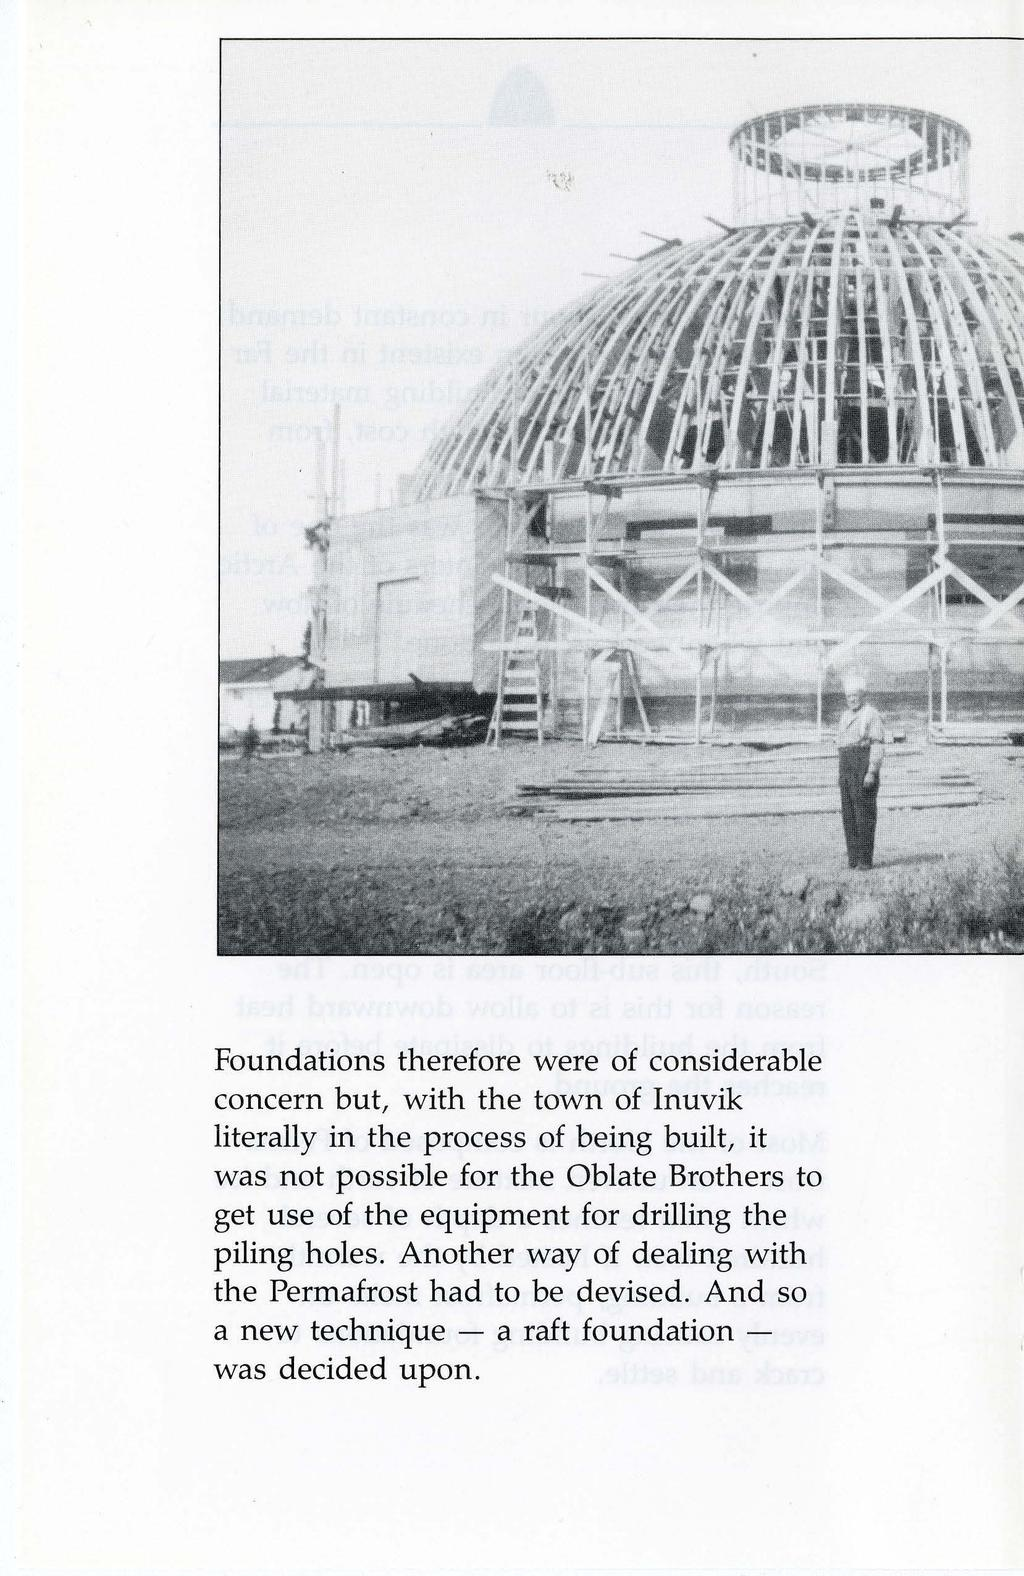 Foundations therefore were of considerable concern but, with the town of Inuvik literally in the process of being built, it was not possible for the Oblate Brothers to get